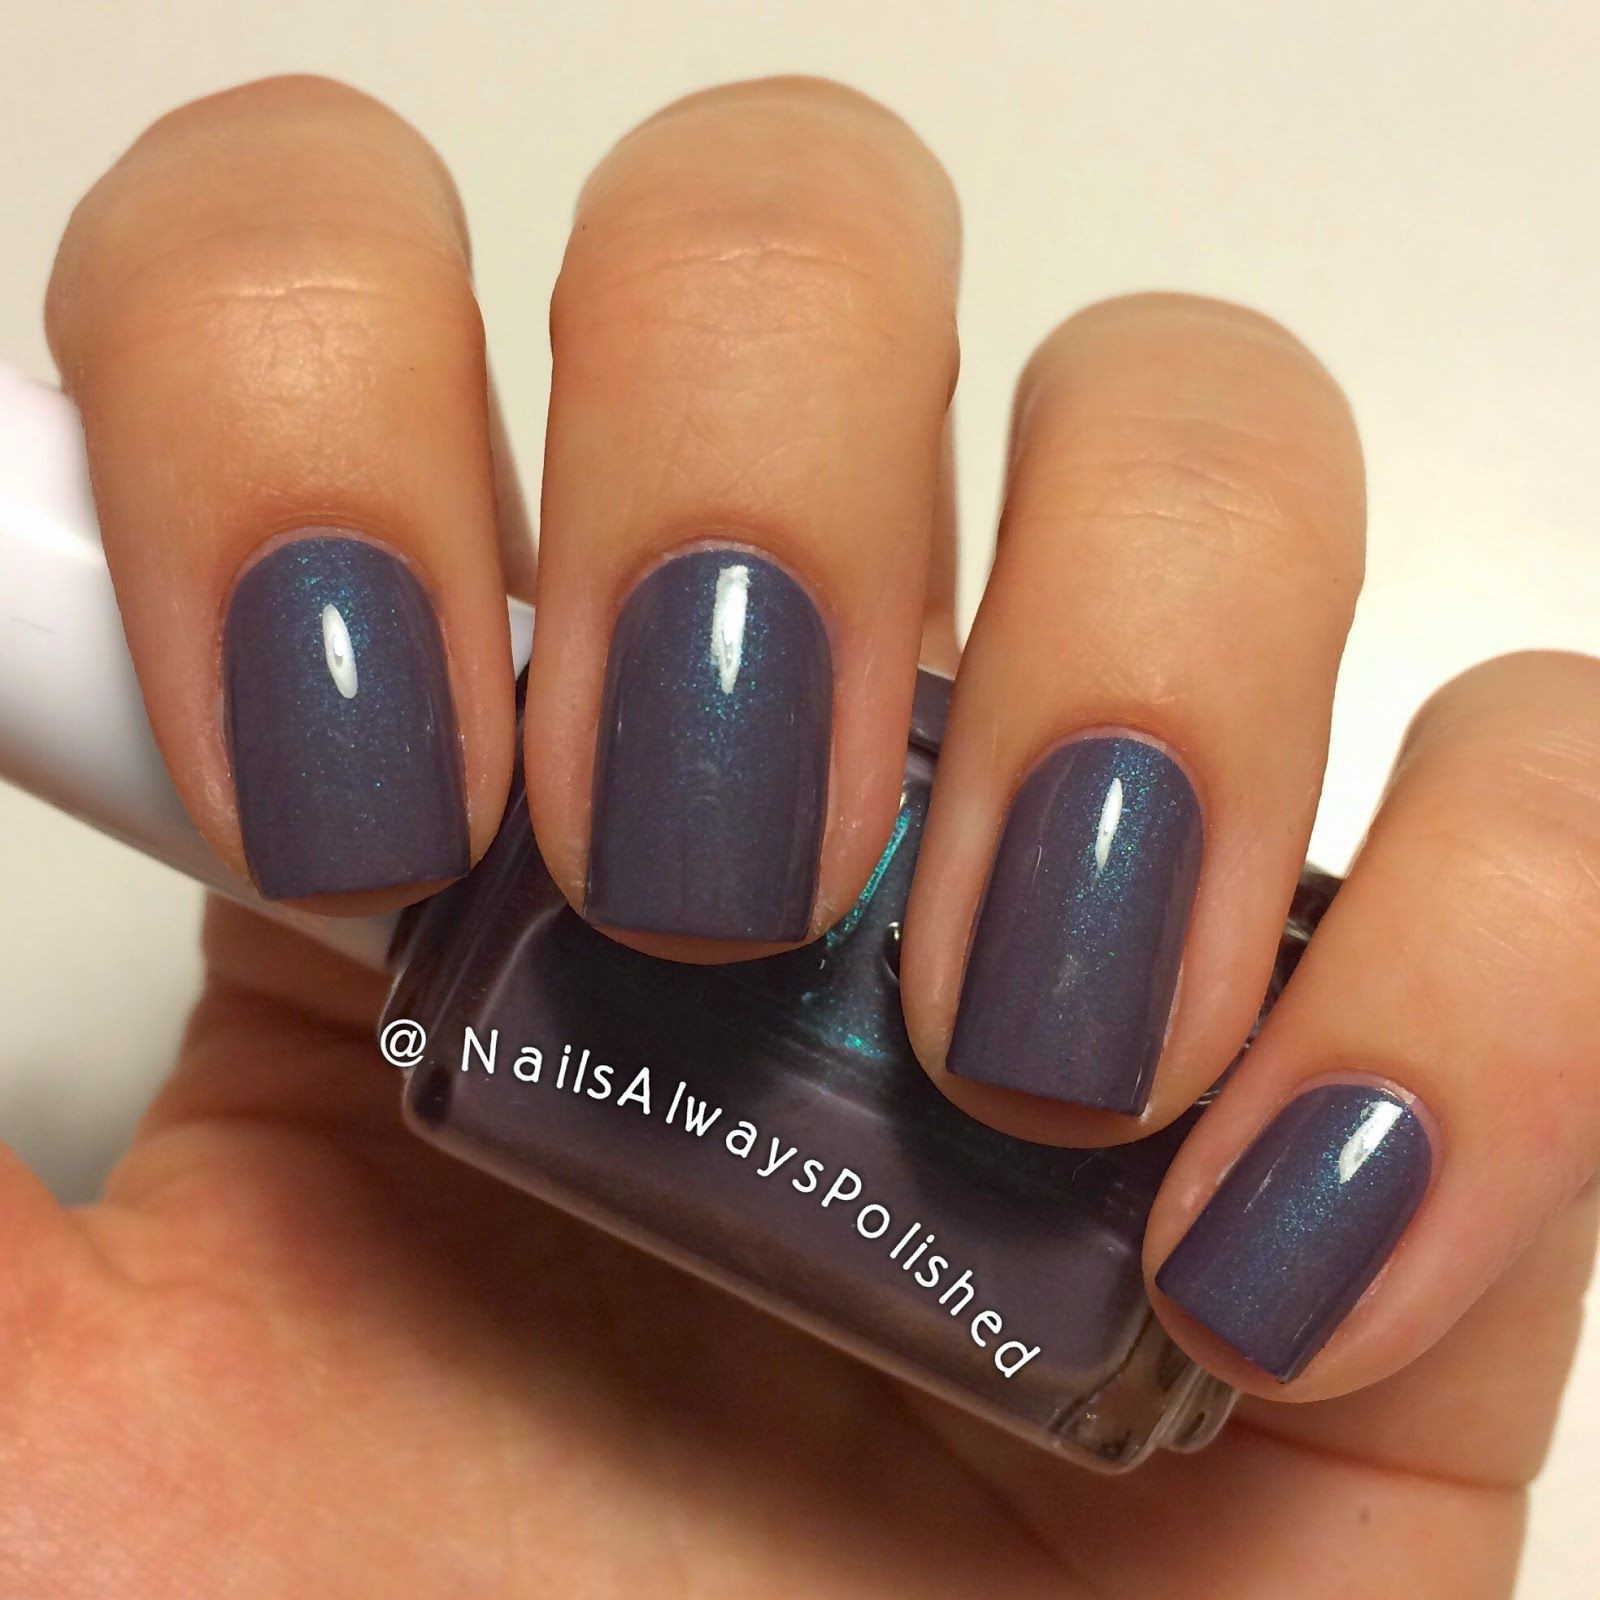 Nails Always Polished: Essie Coat Couture | Nails | Pinterest